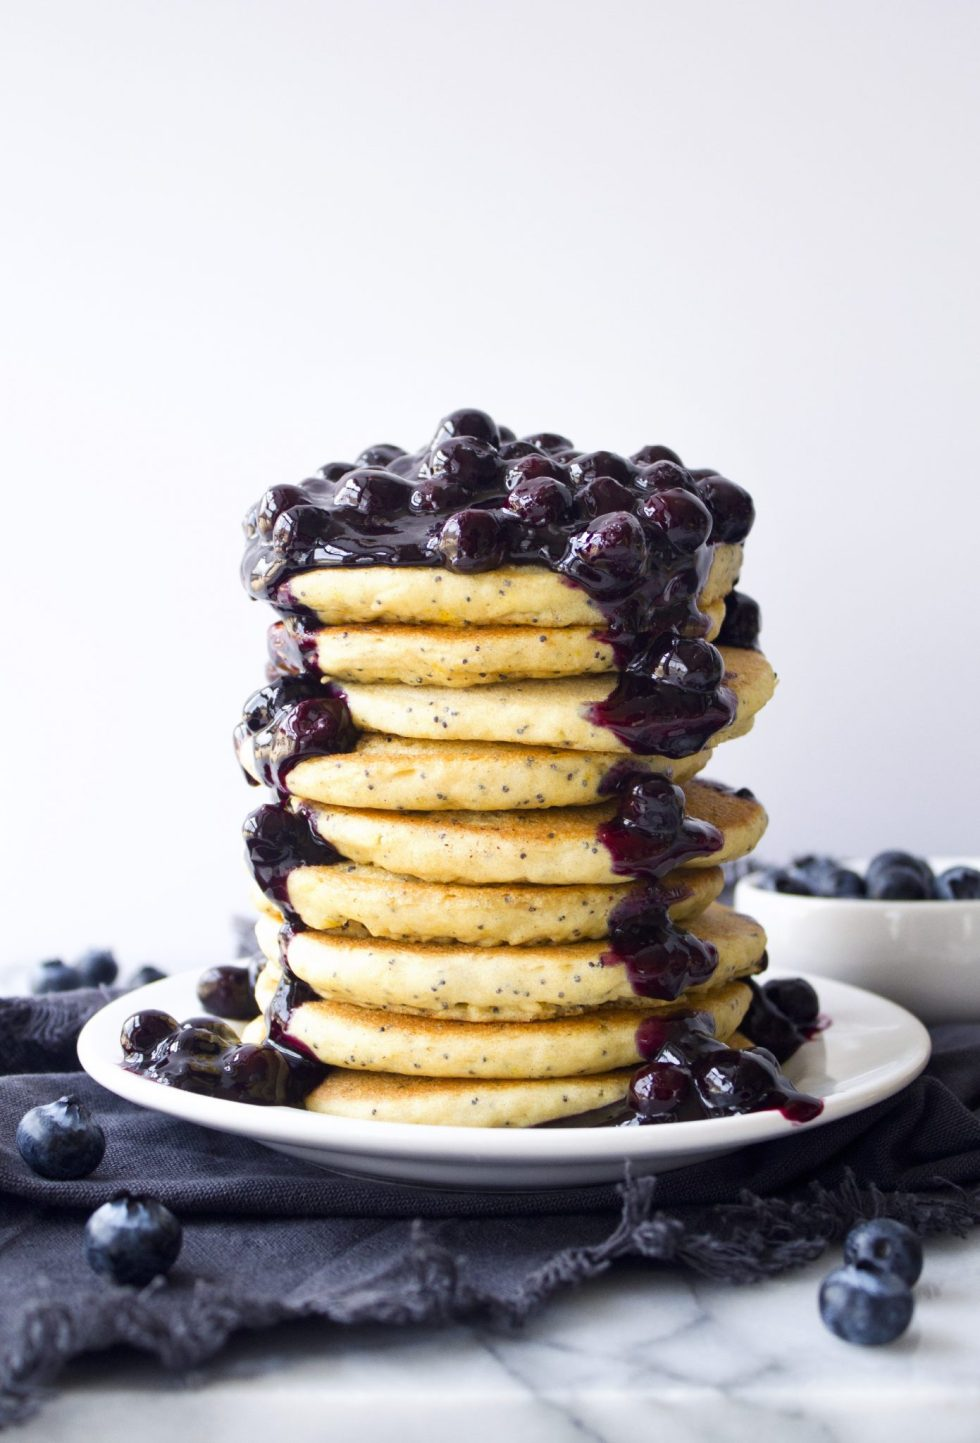 Lemon Poppyseed Pancakes with Blueberry Sauce | Gluten, Dairy, and Refined Sugar Free | Wife Mama Foodie